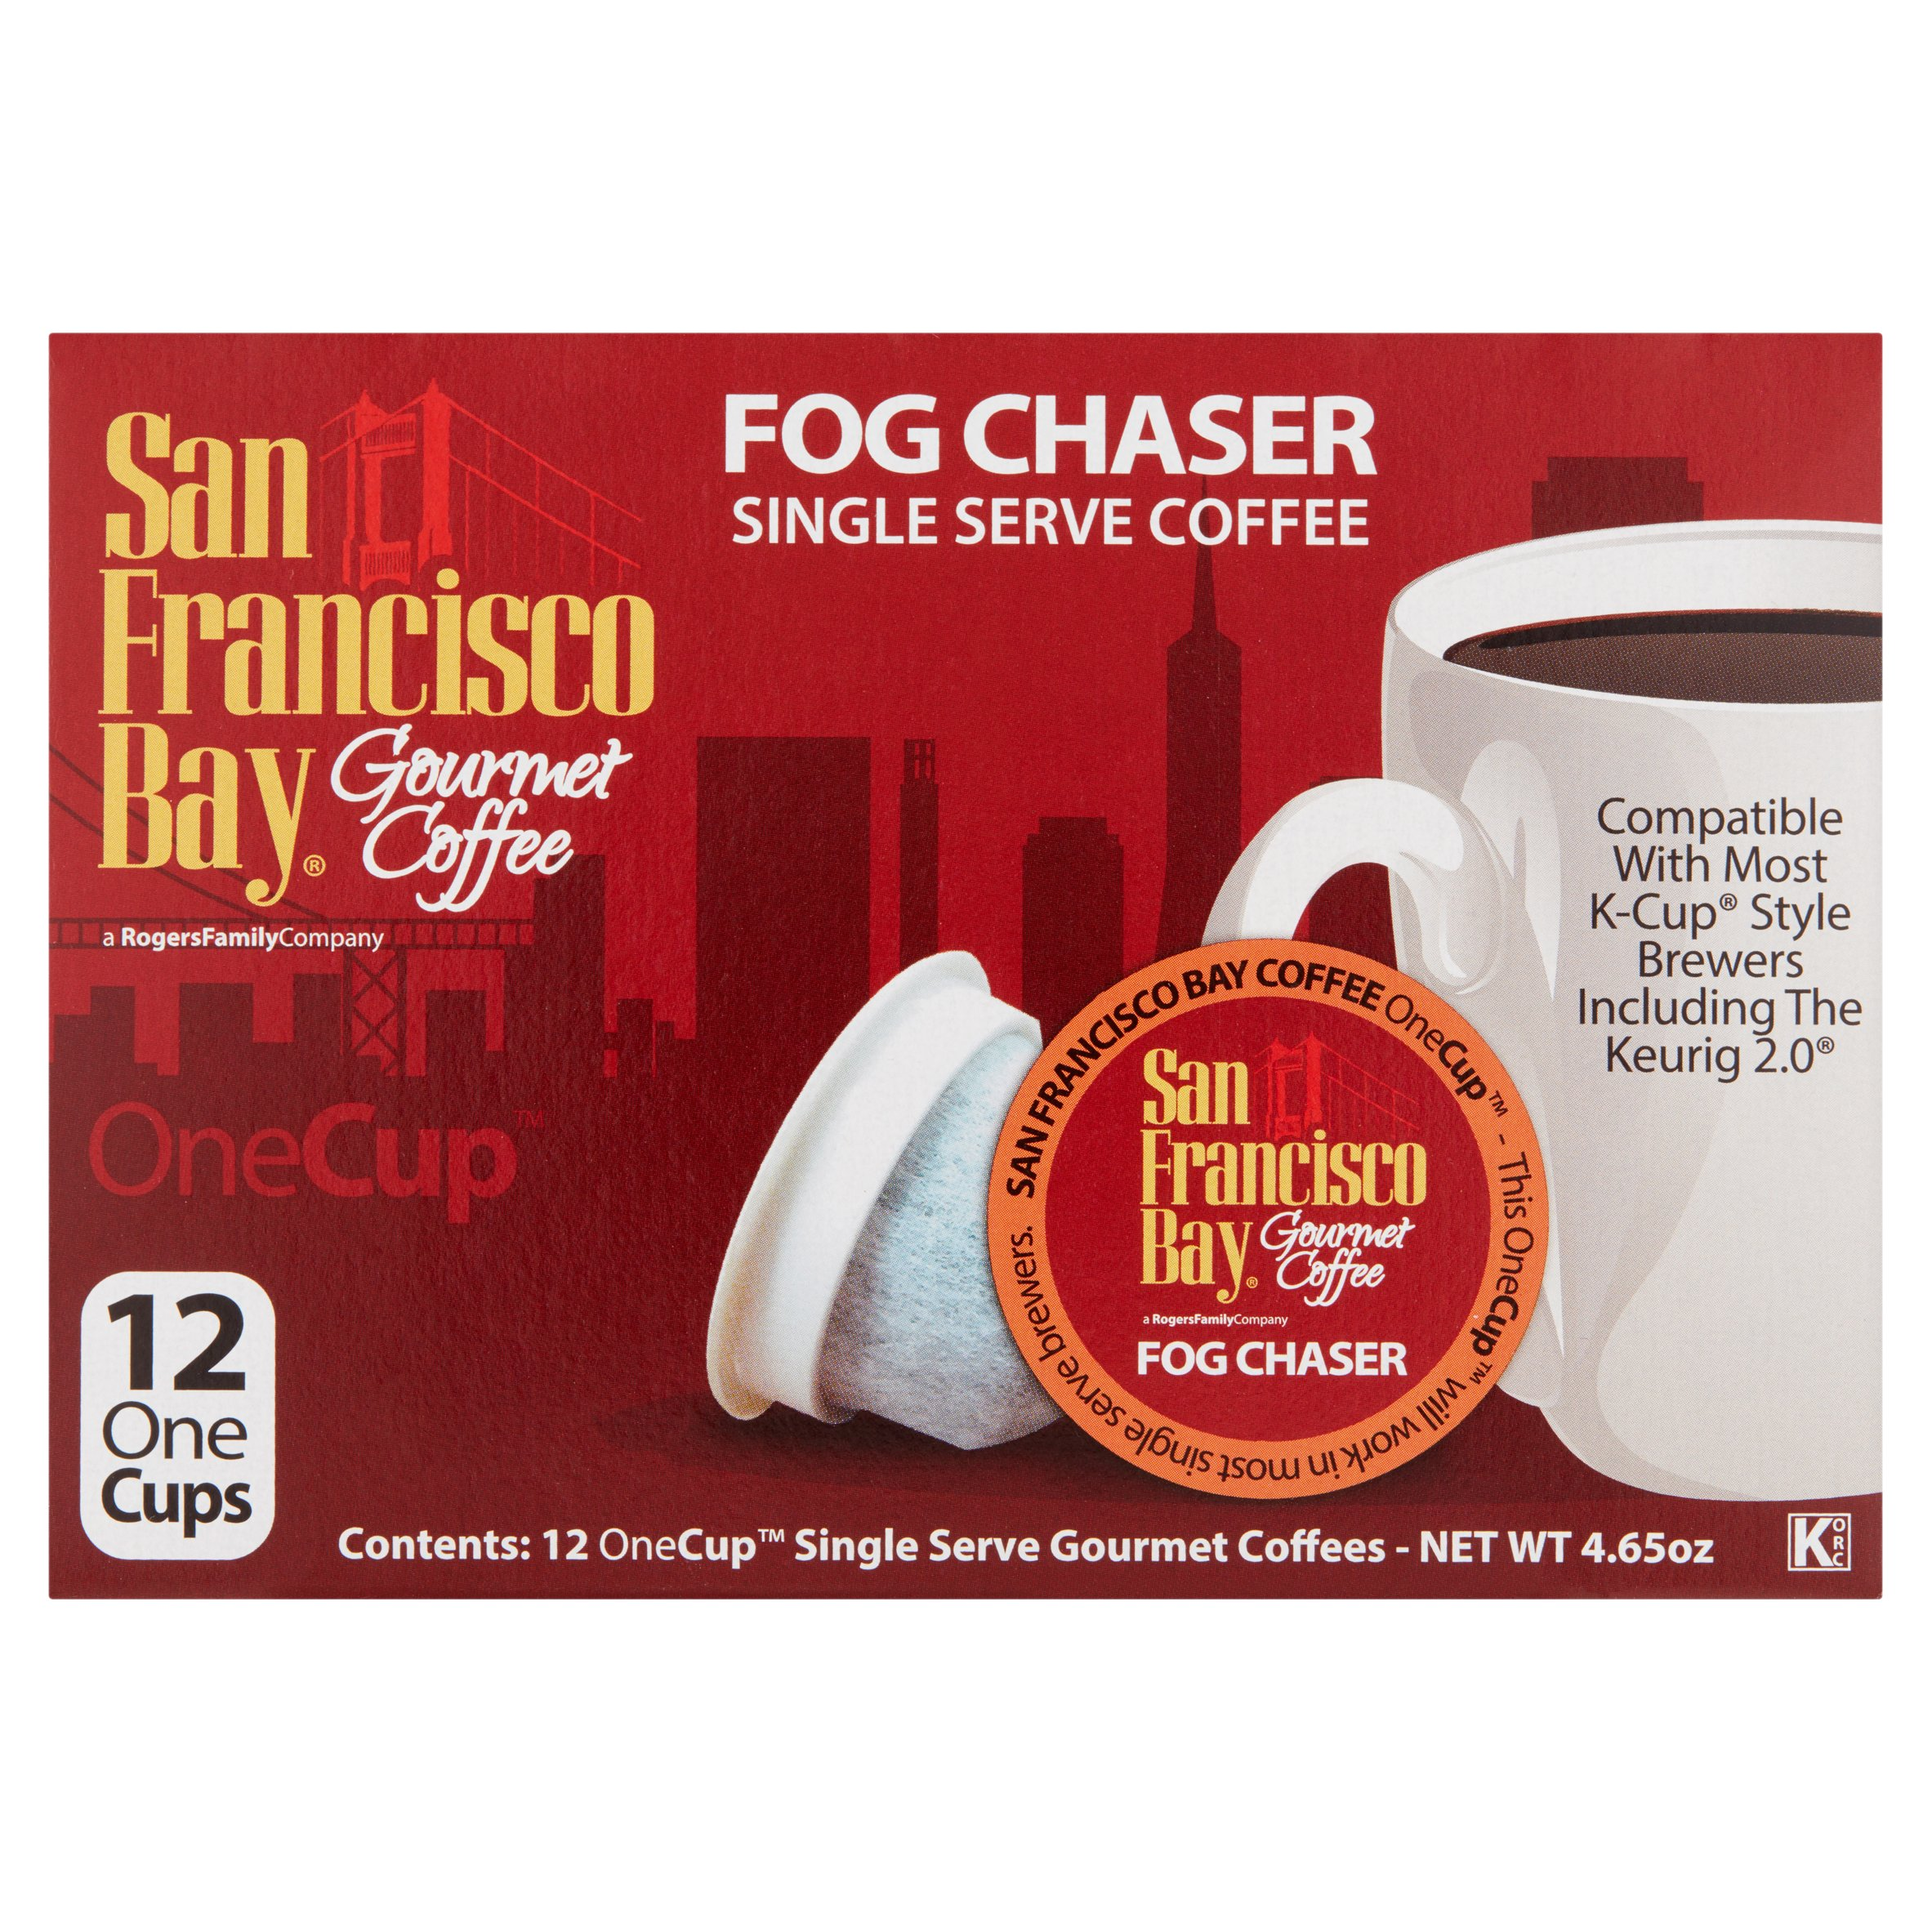 Rogers Family Company San Francisco Bay Fog Chaser Gourmet Coffee, 4.65 oz, 6 pack